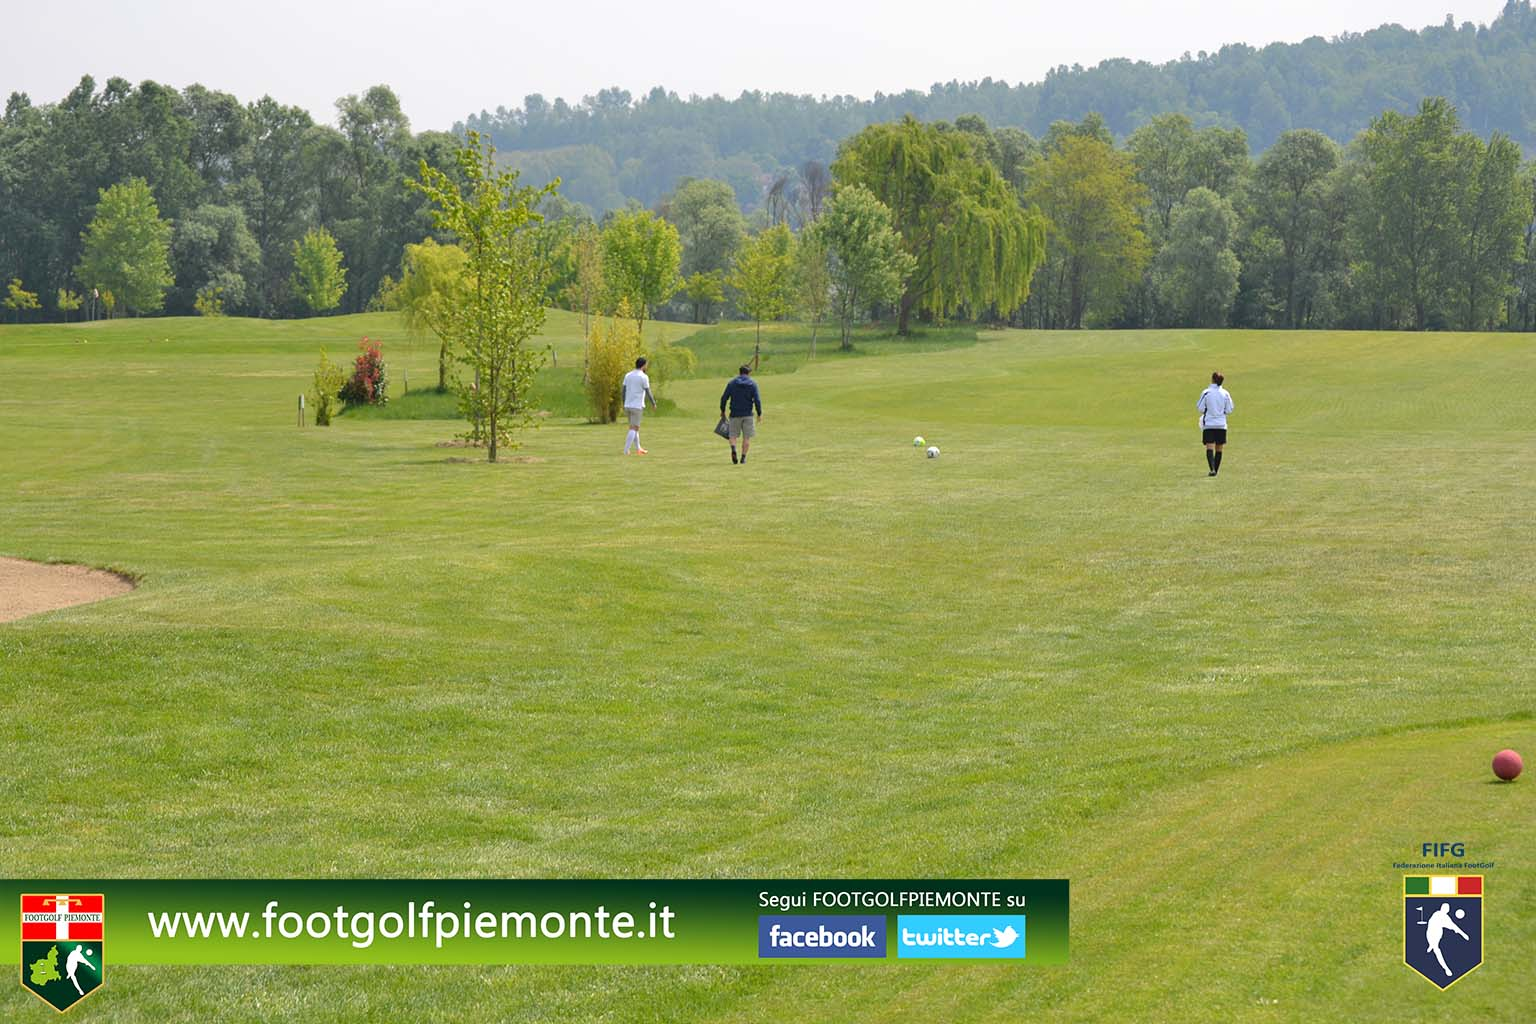 FOTO 9 Regions' Cup Footgolf Piemonte 2016 Golf Città di Asti (At) 30apr16-50